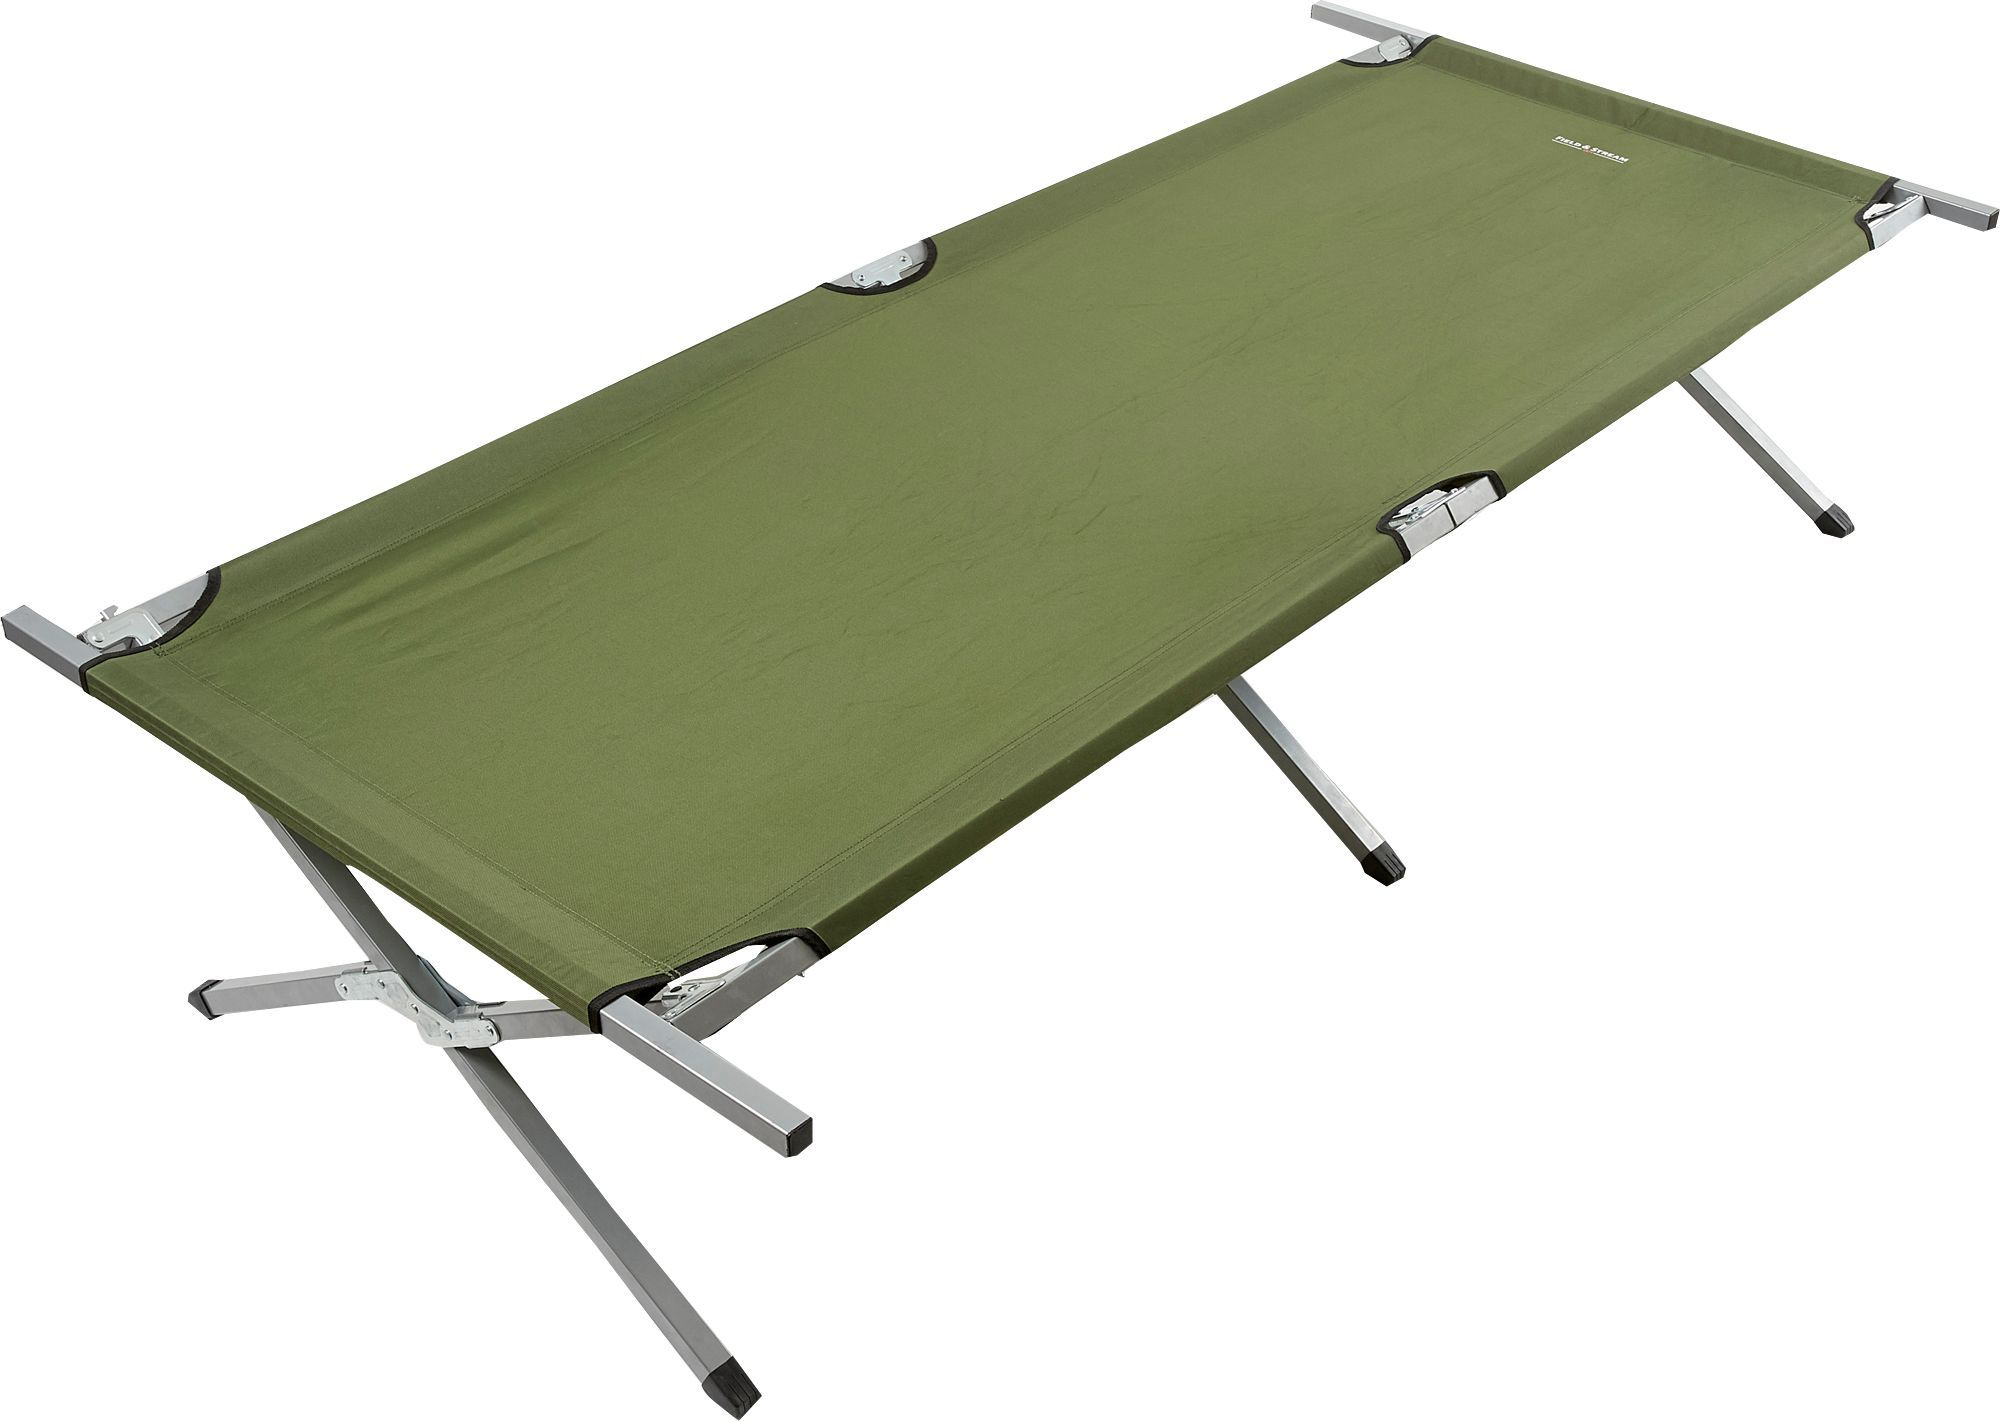 Field & Stream Oversized Camp Cot, Green | Camping cot ...